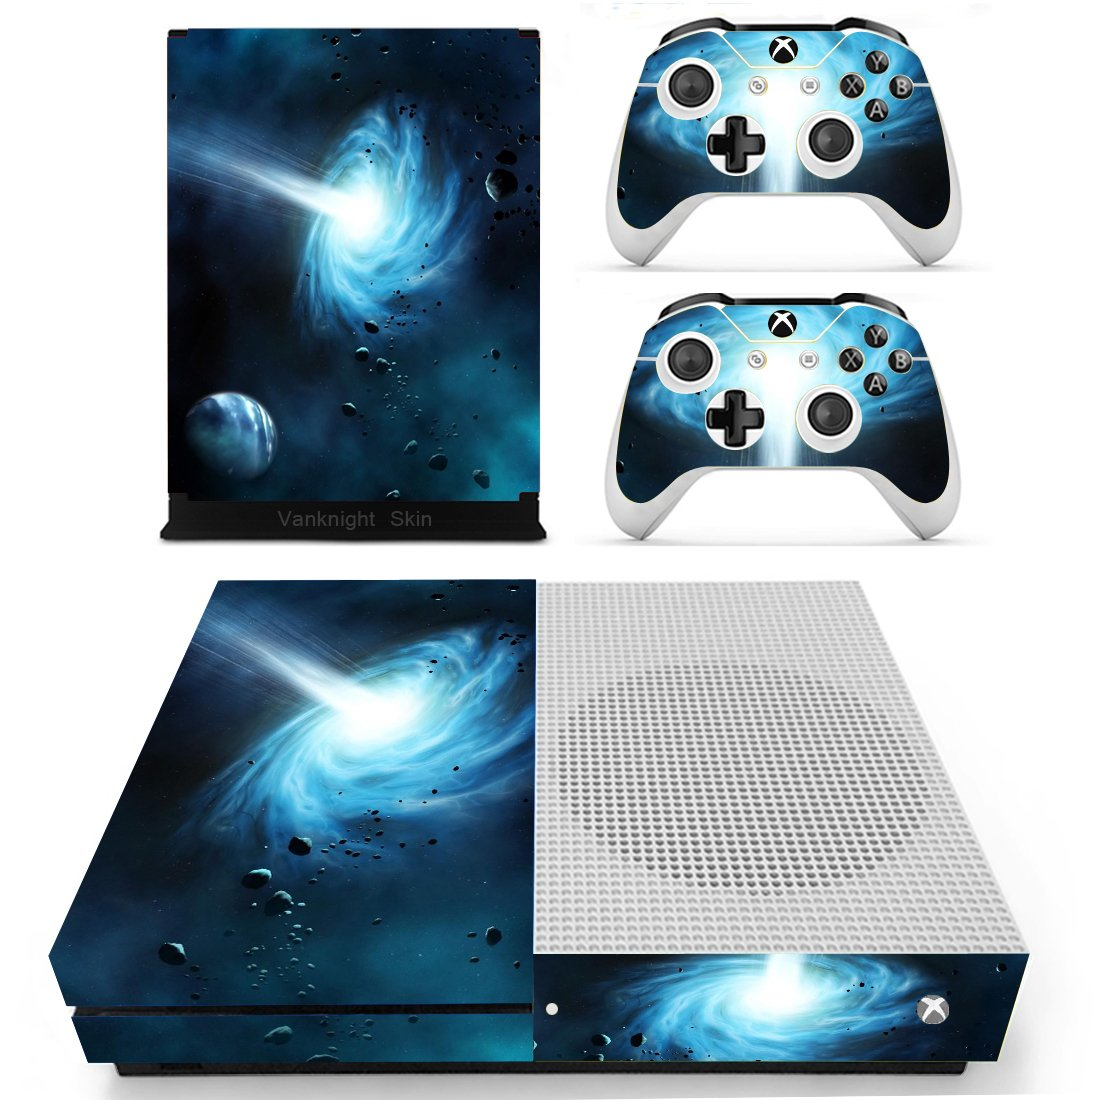 Vanknight Vinyl Decal Skin Stickers Cover for Xbox One S Slim Console Remotes